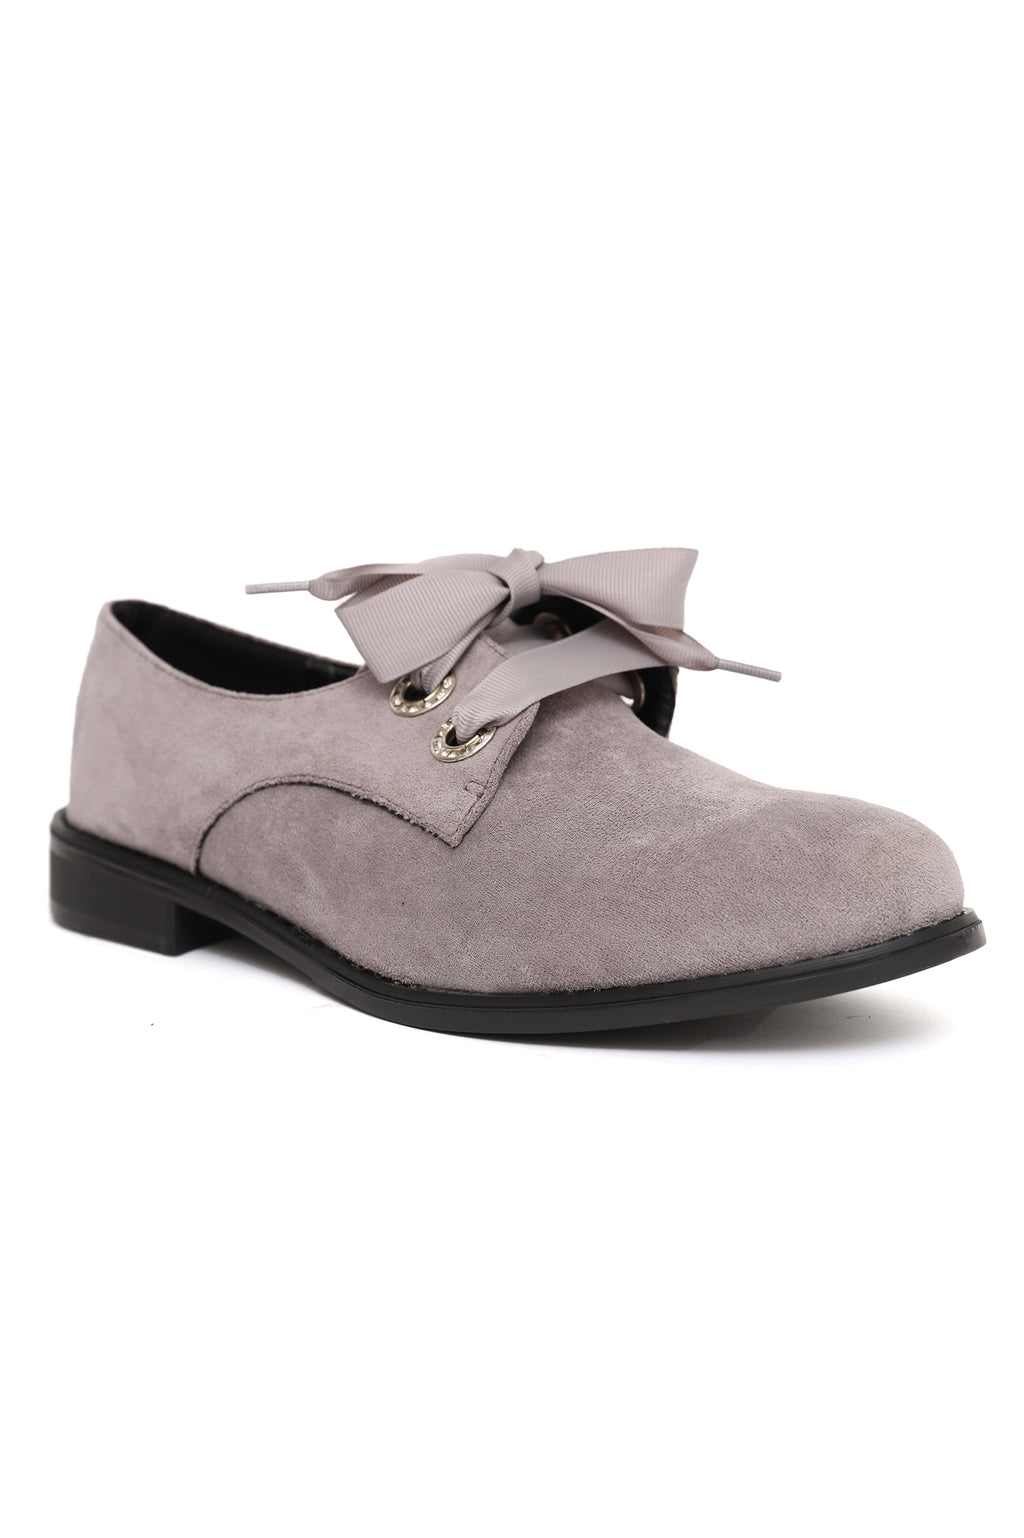 LACE UP FLATS -GREY